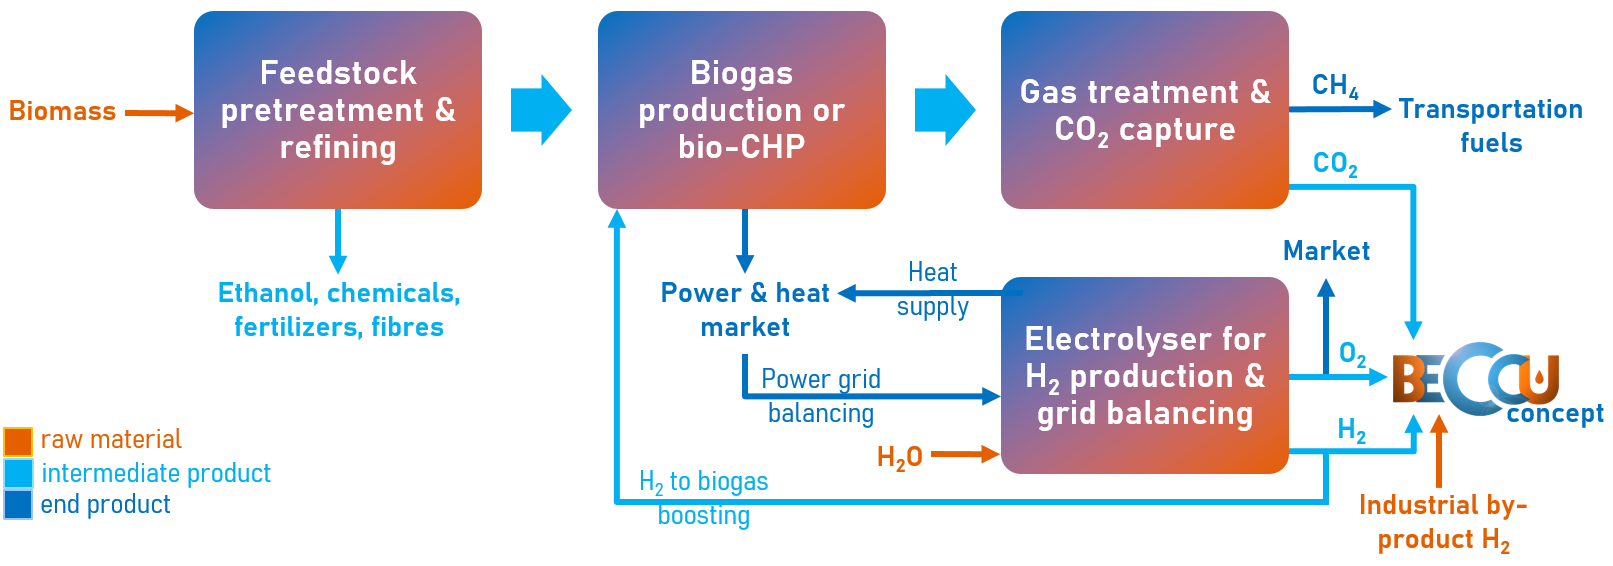 Beccu concept bioenergy production process